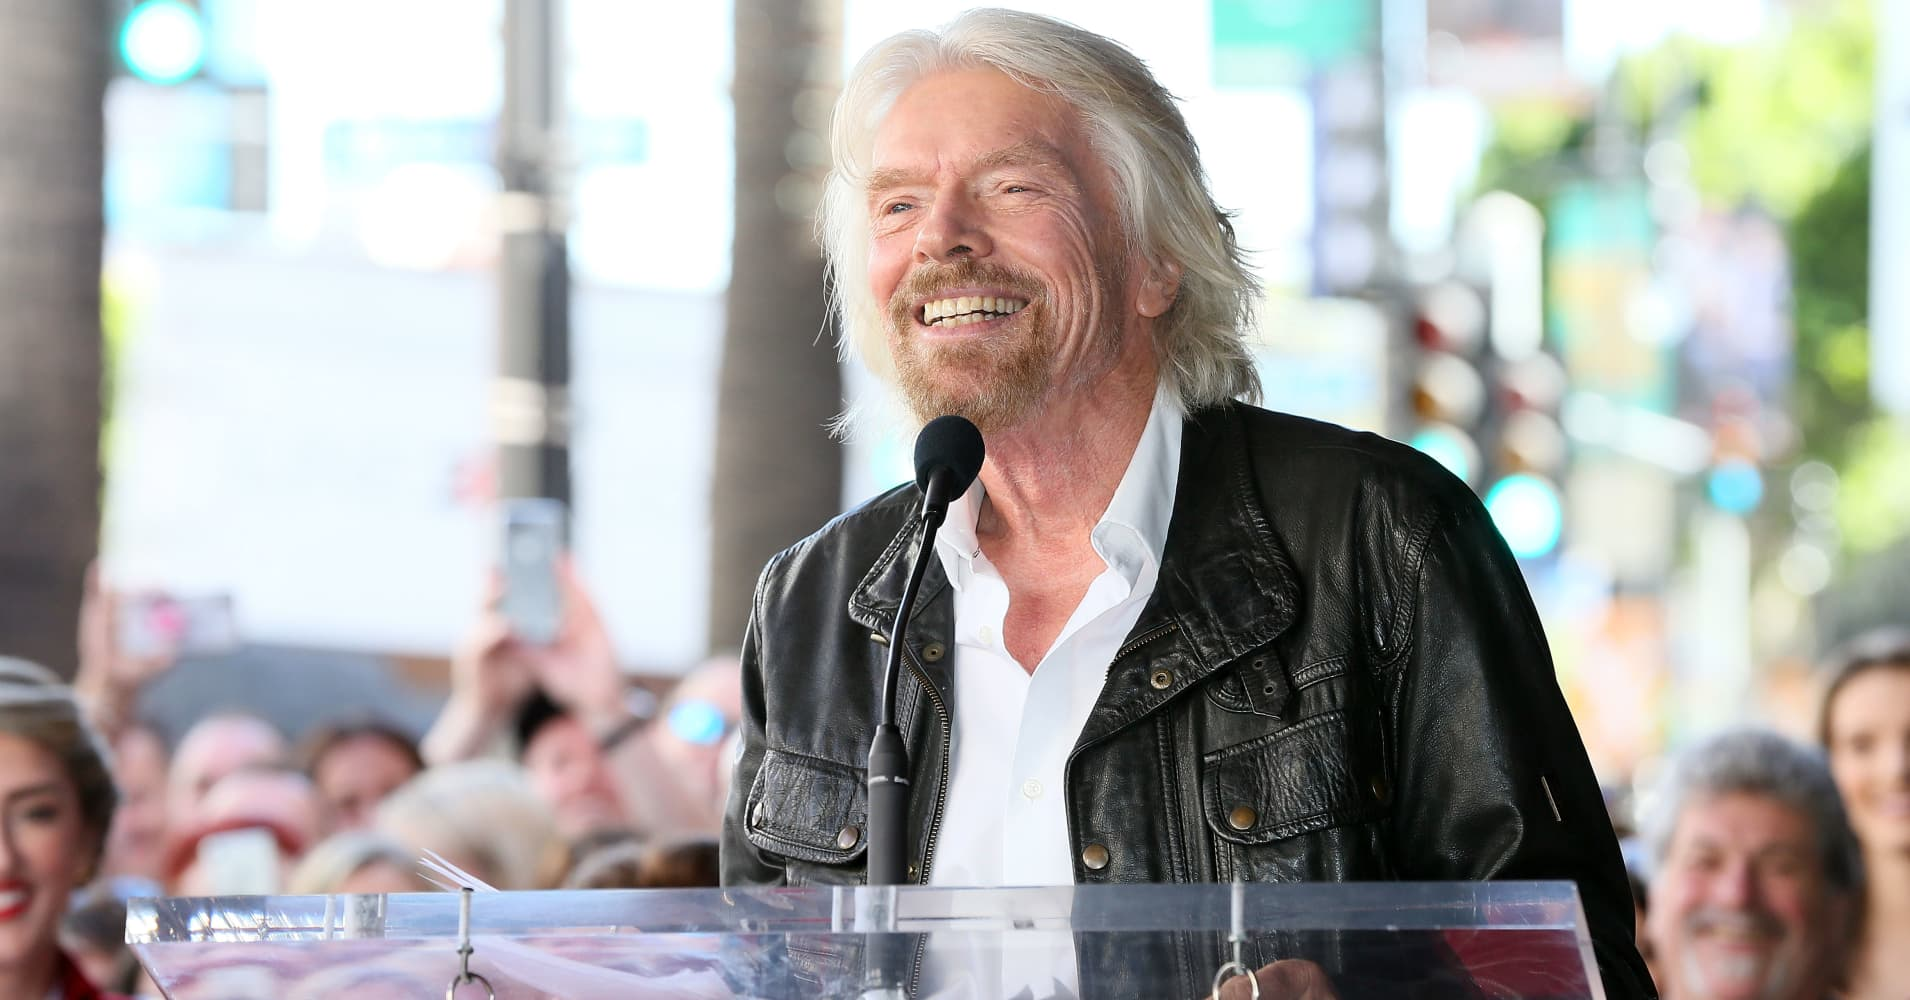 Sir Richard Branson is honored with a Star on the Hollywood Walk of Fame.